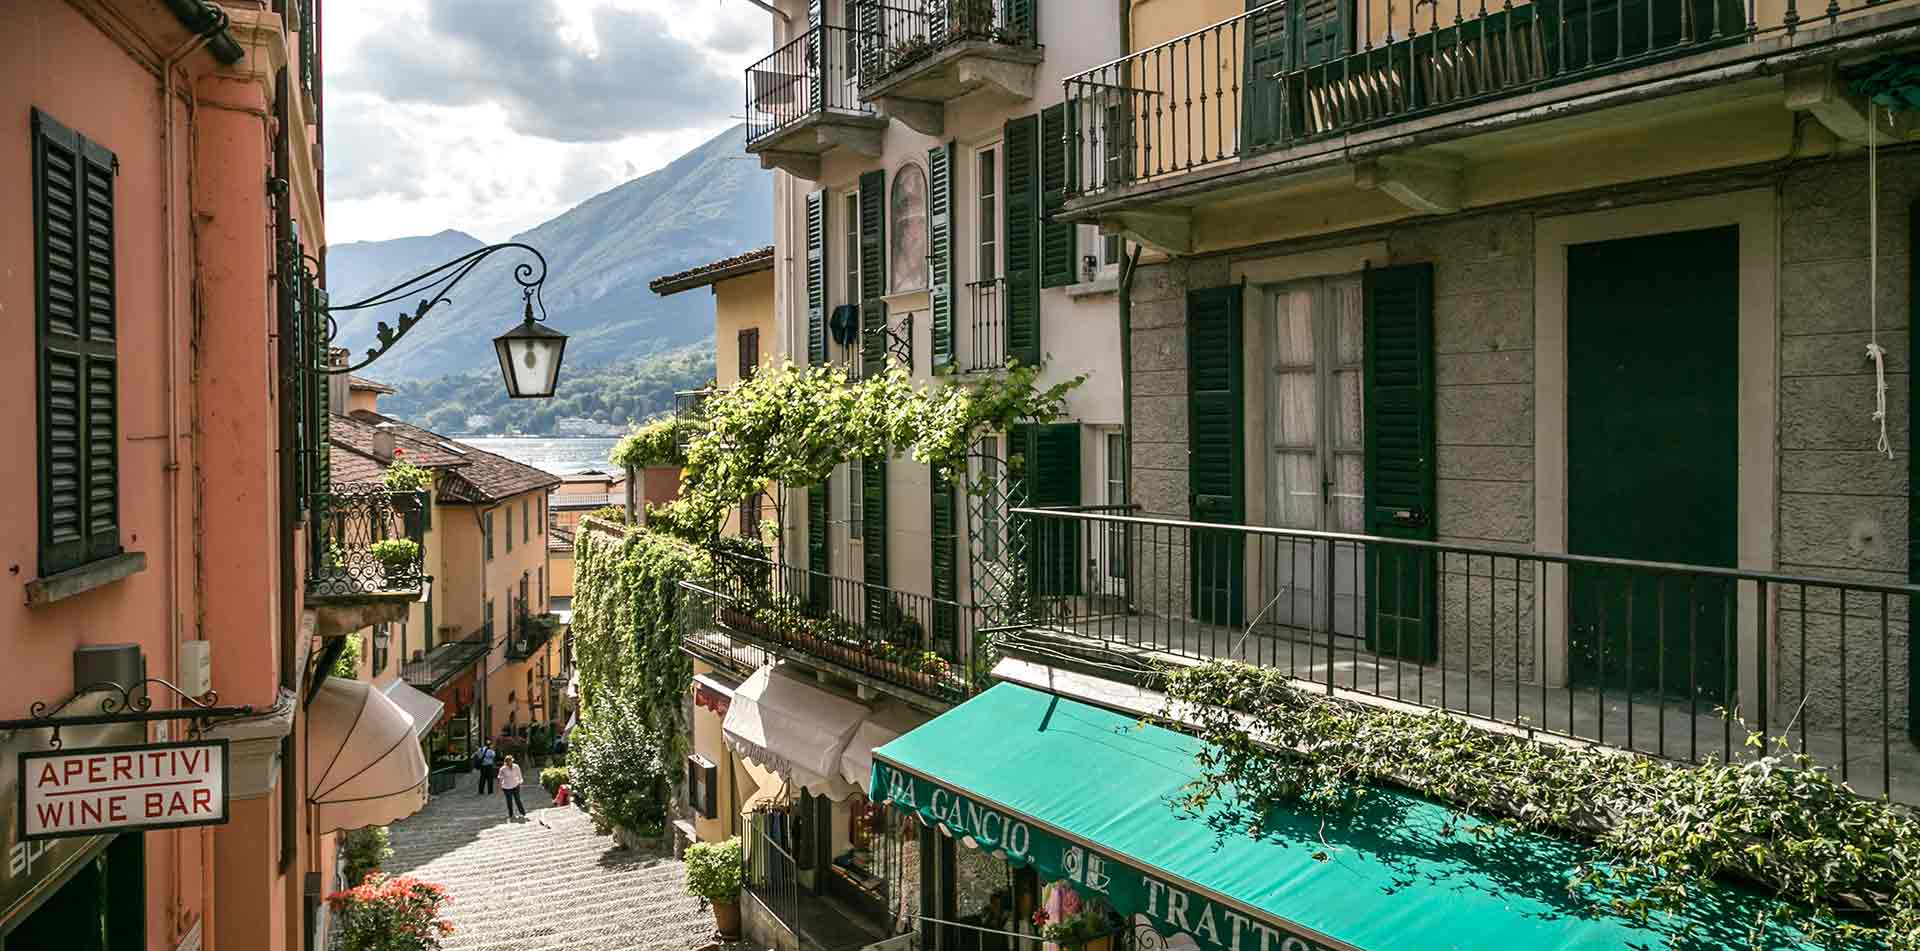 Europe Italy Lake Como Bellagio old bright buildings cobblestone streets green ivy scenic view - luxury vacation destinations